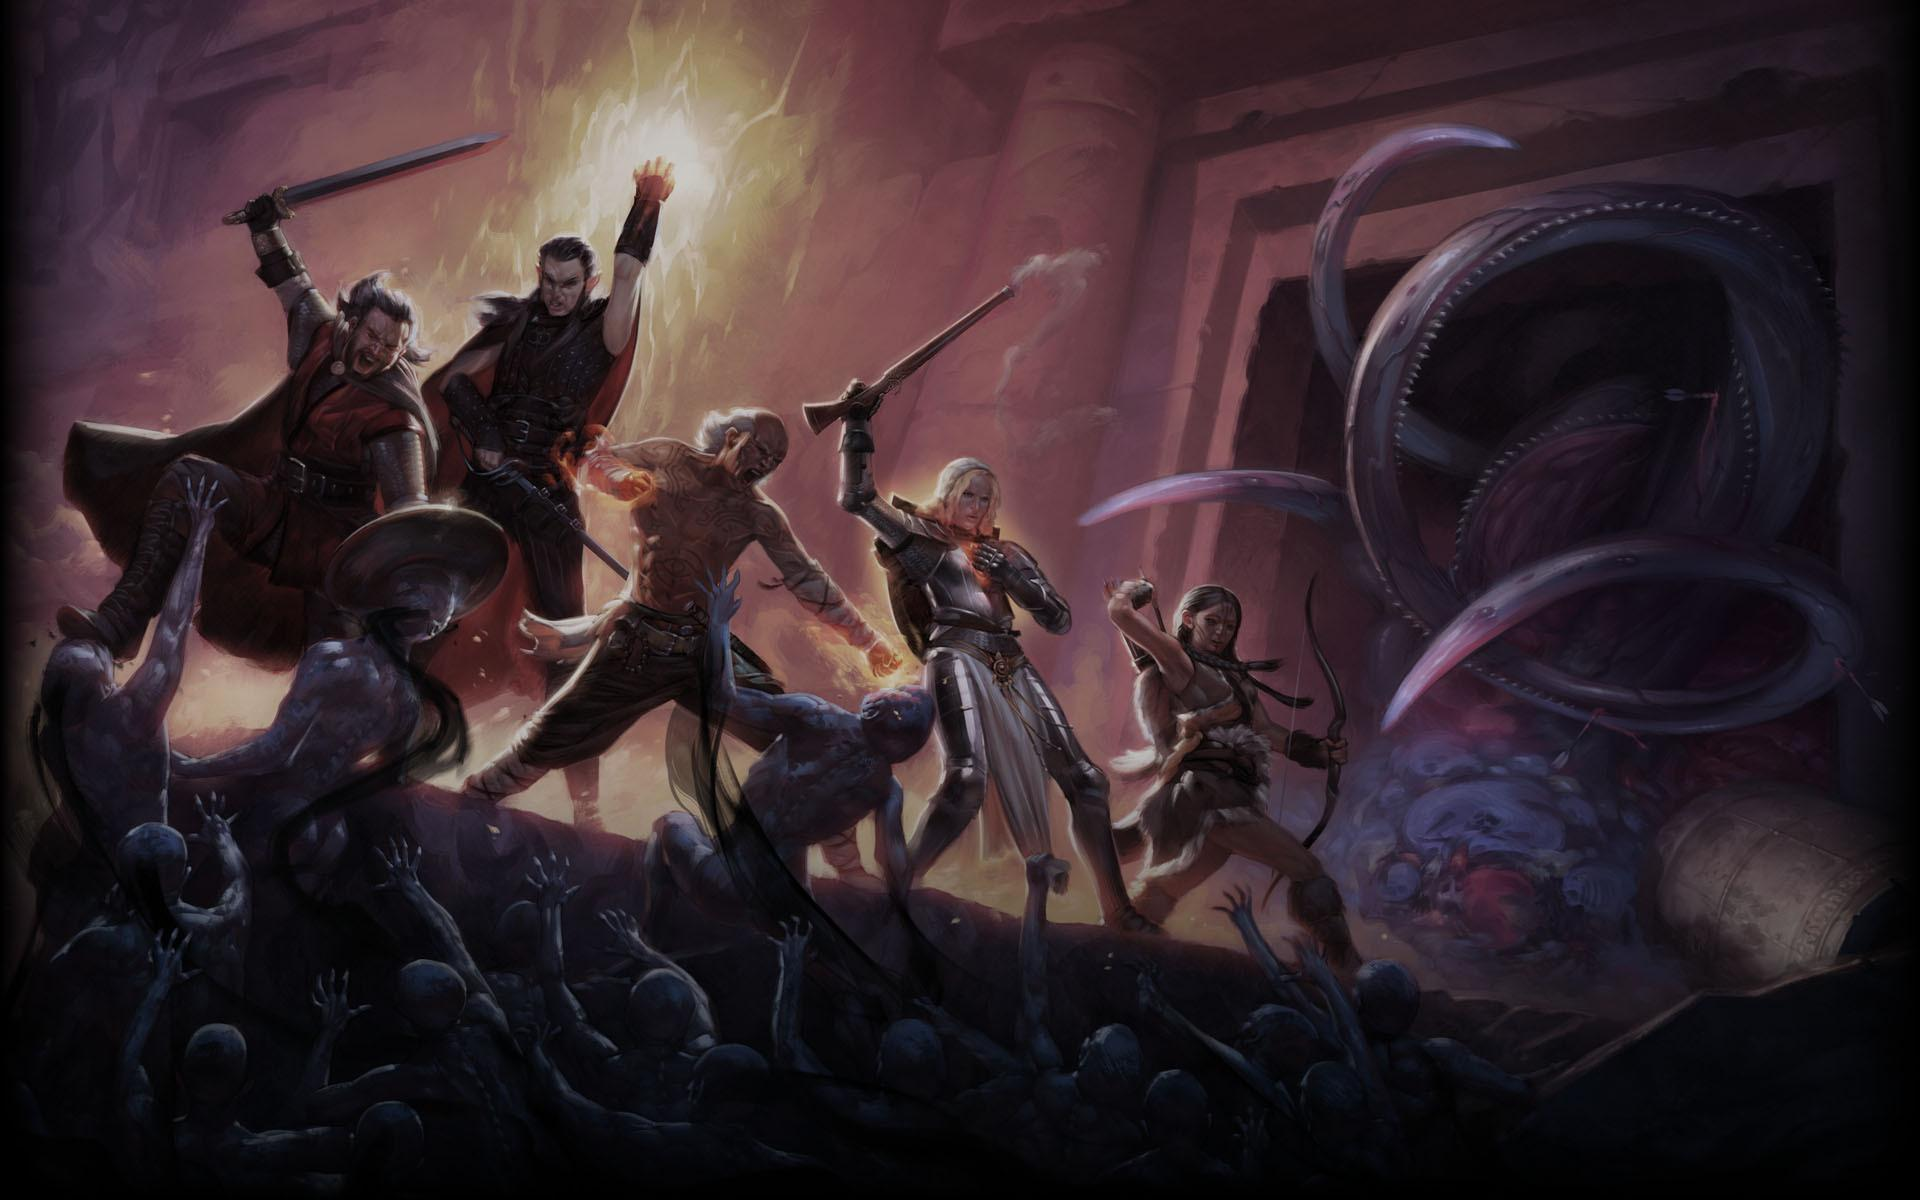 Pillars Of Eternity Background: Pillars Of Eternity Wallpaper HD Download